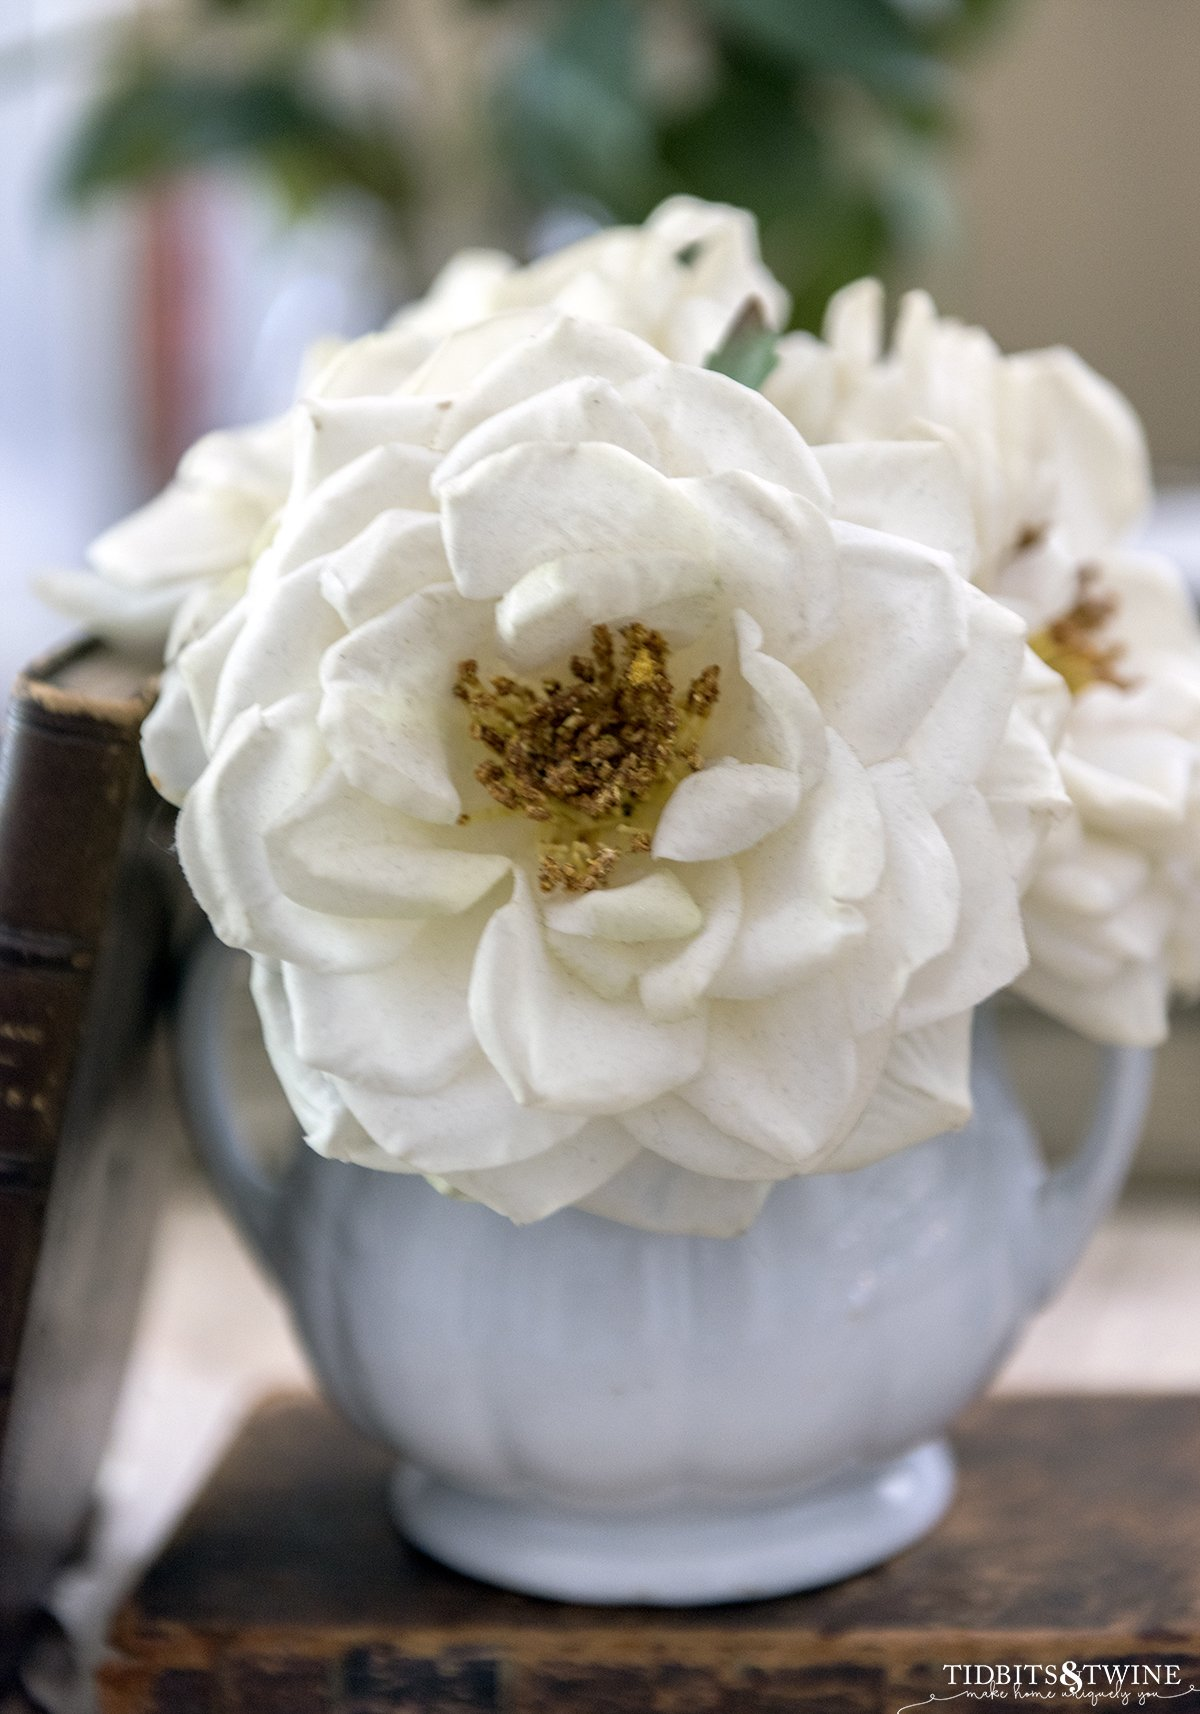 closeup of a fake white rose with a yellow pollen center in a white ironstone sugar pot next to antique leather books